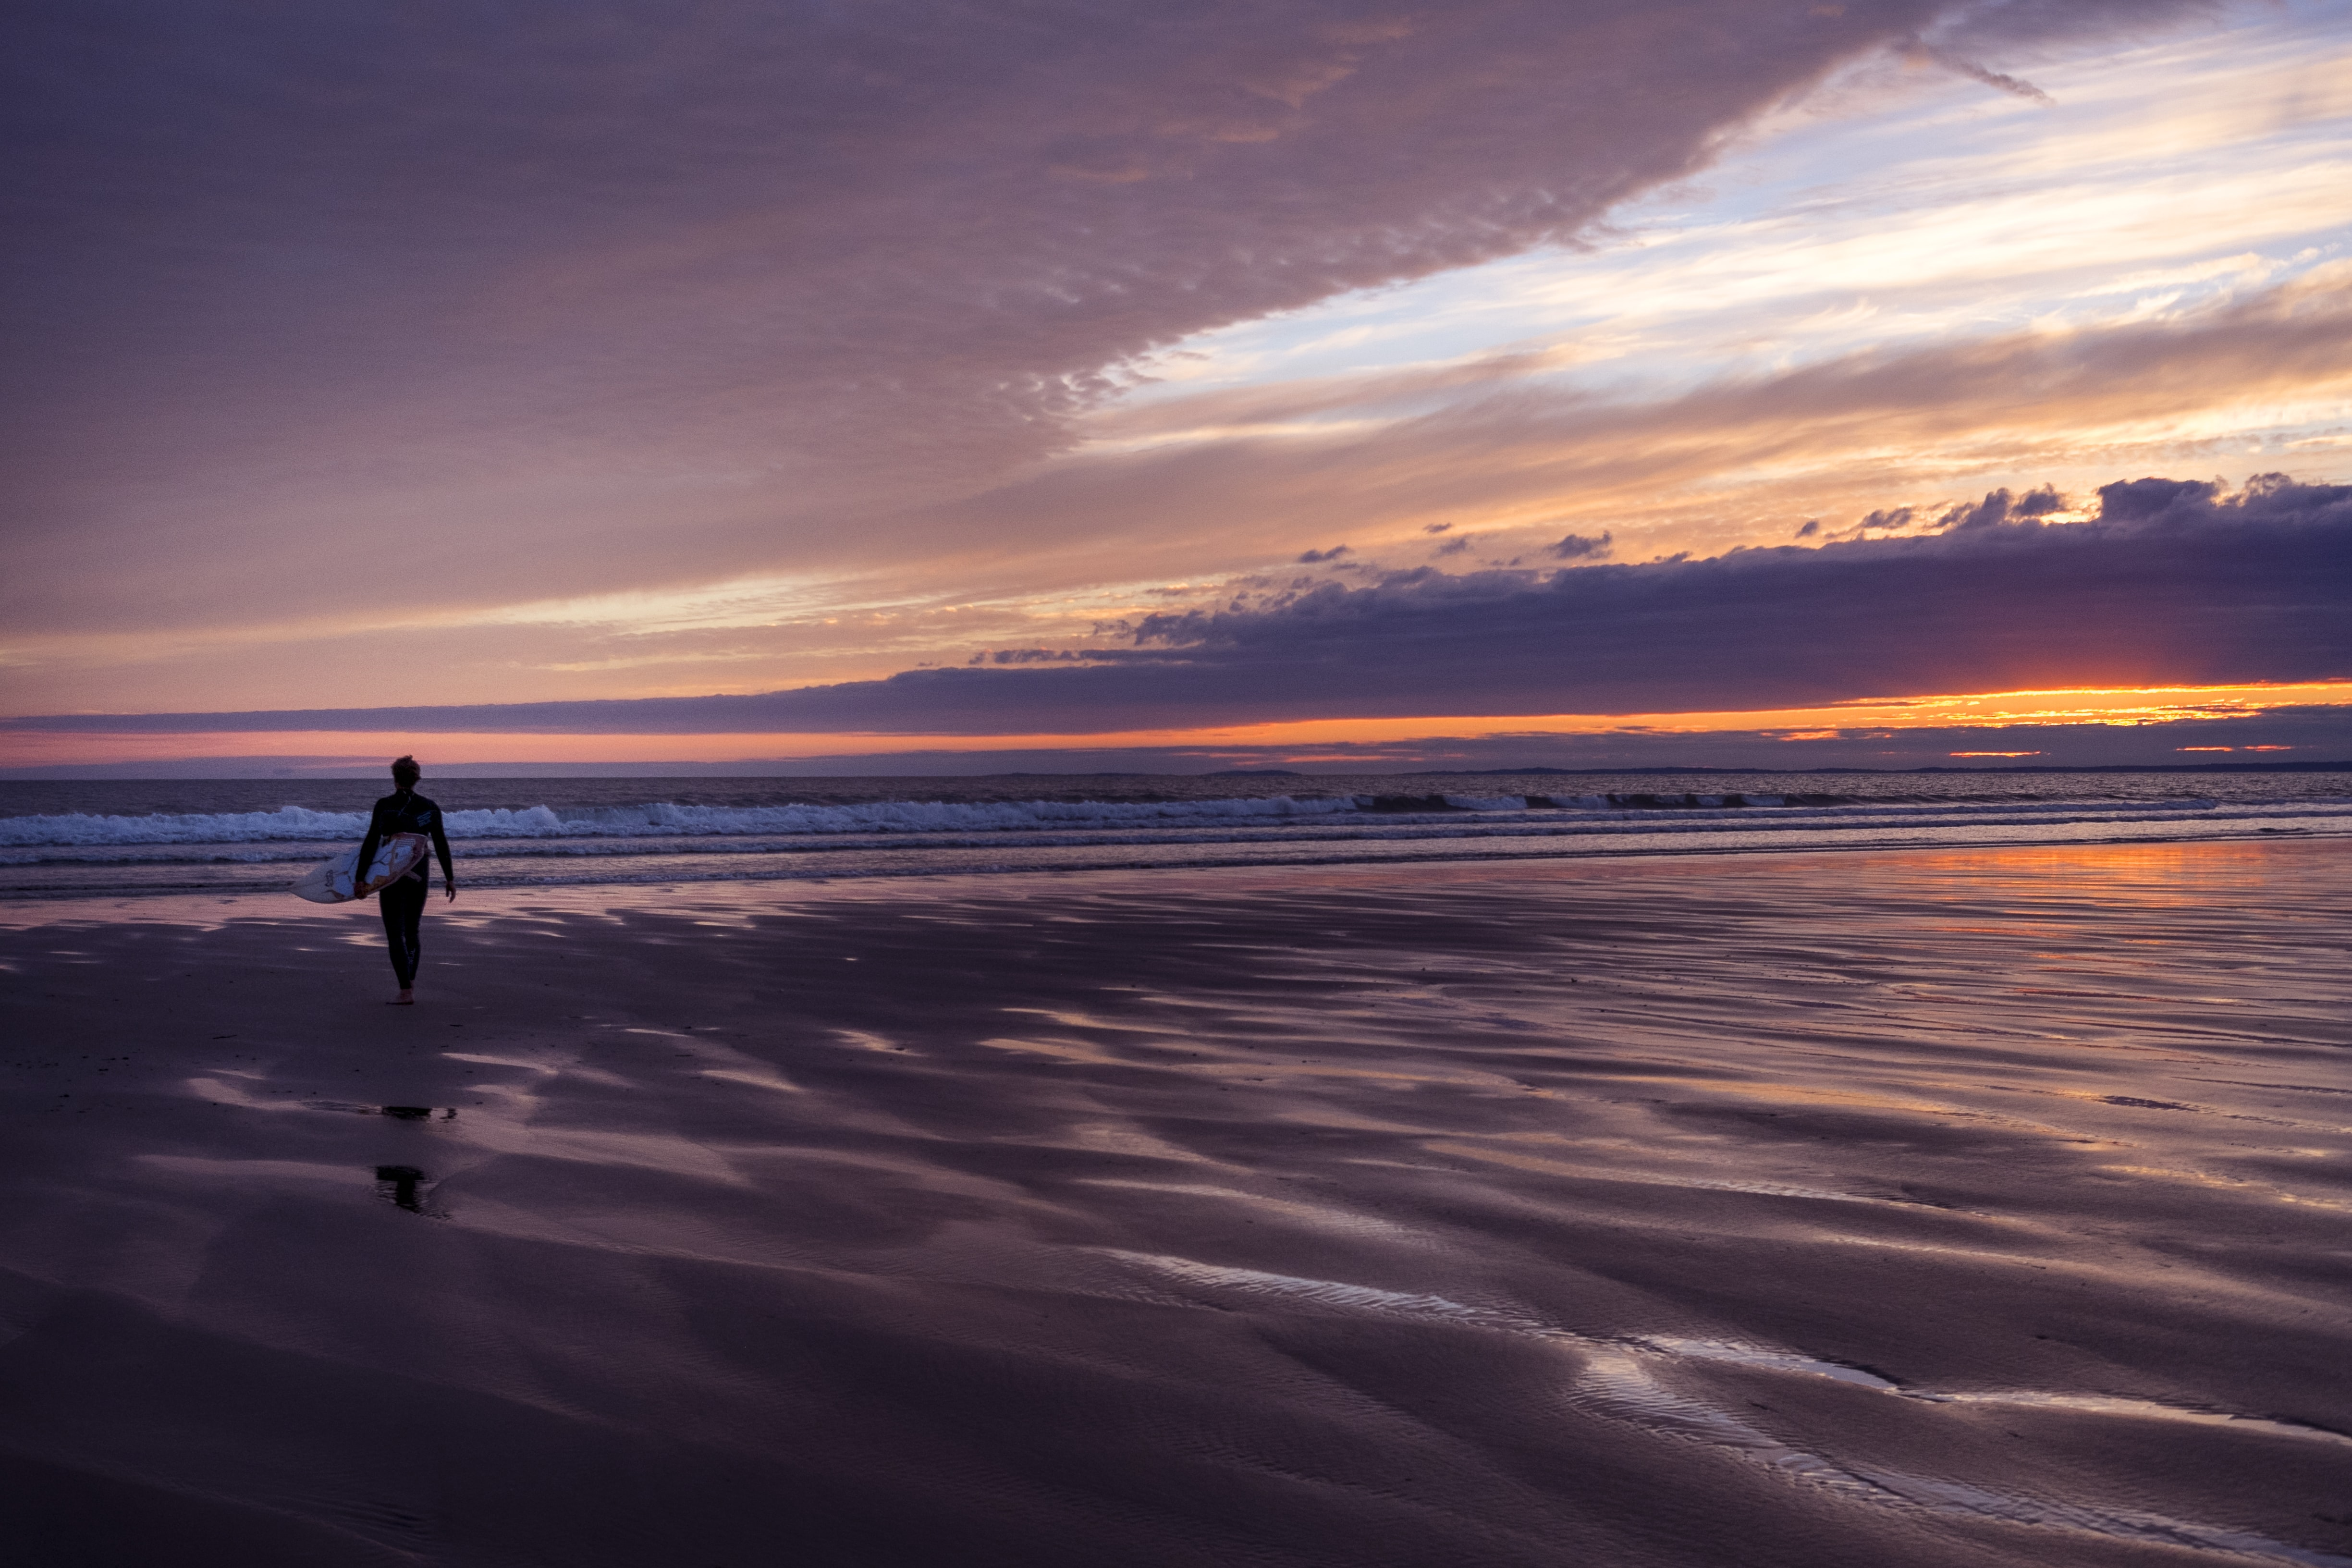 A surfer in a wetsuit walking across a beach at sunset towards the sea, with the sun behind a cloud causing a purple sky